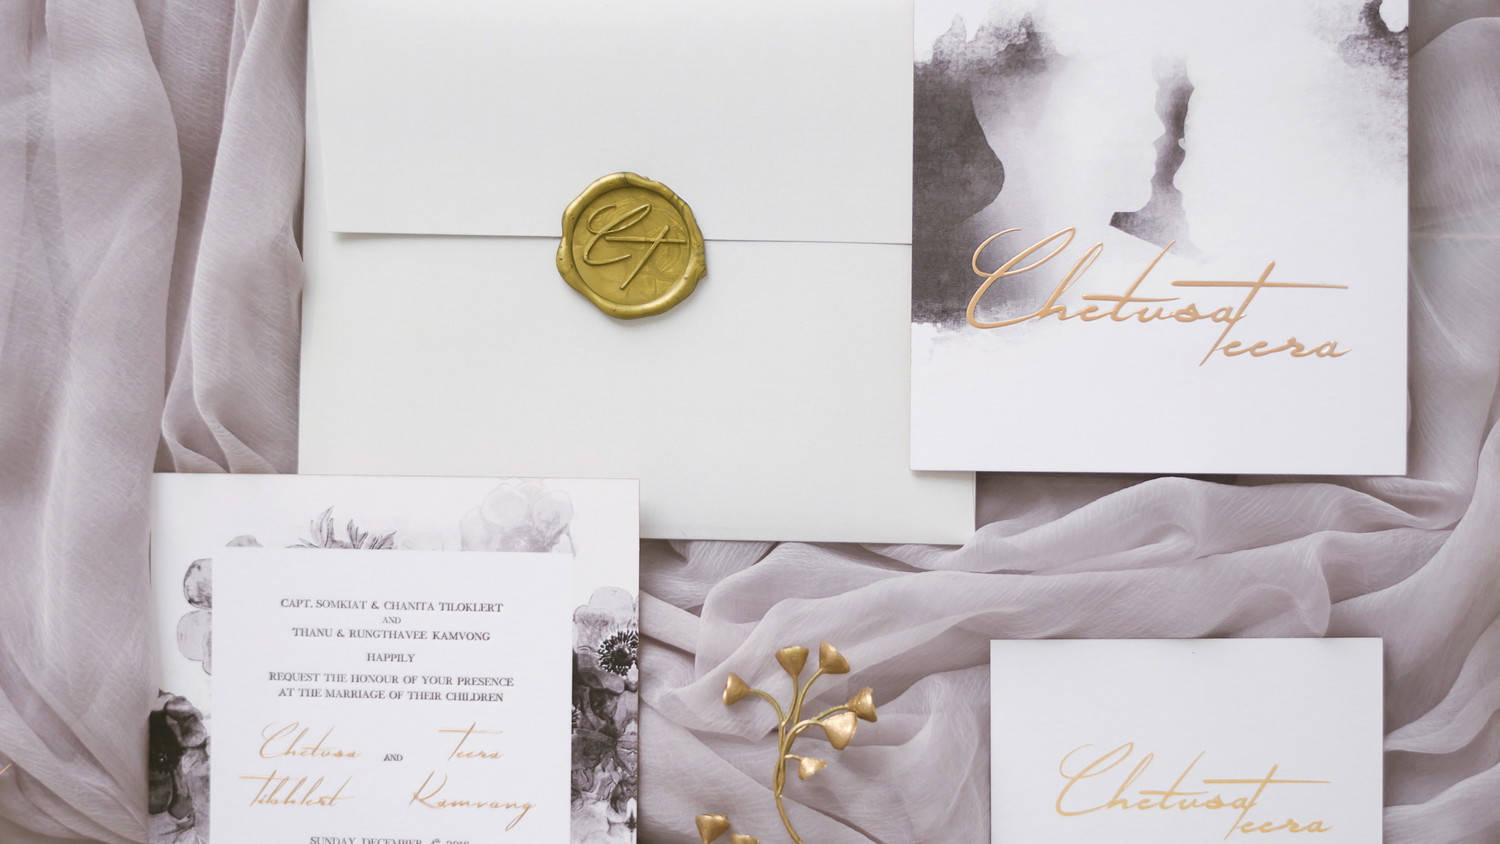 Wax Seals For Wedding Invitations: Gorgeous Wedding Invitations With Wax Seals